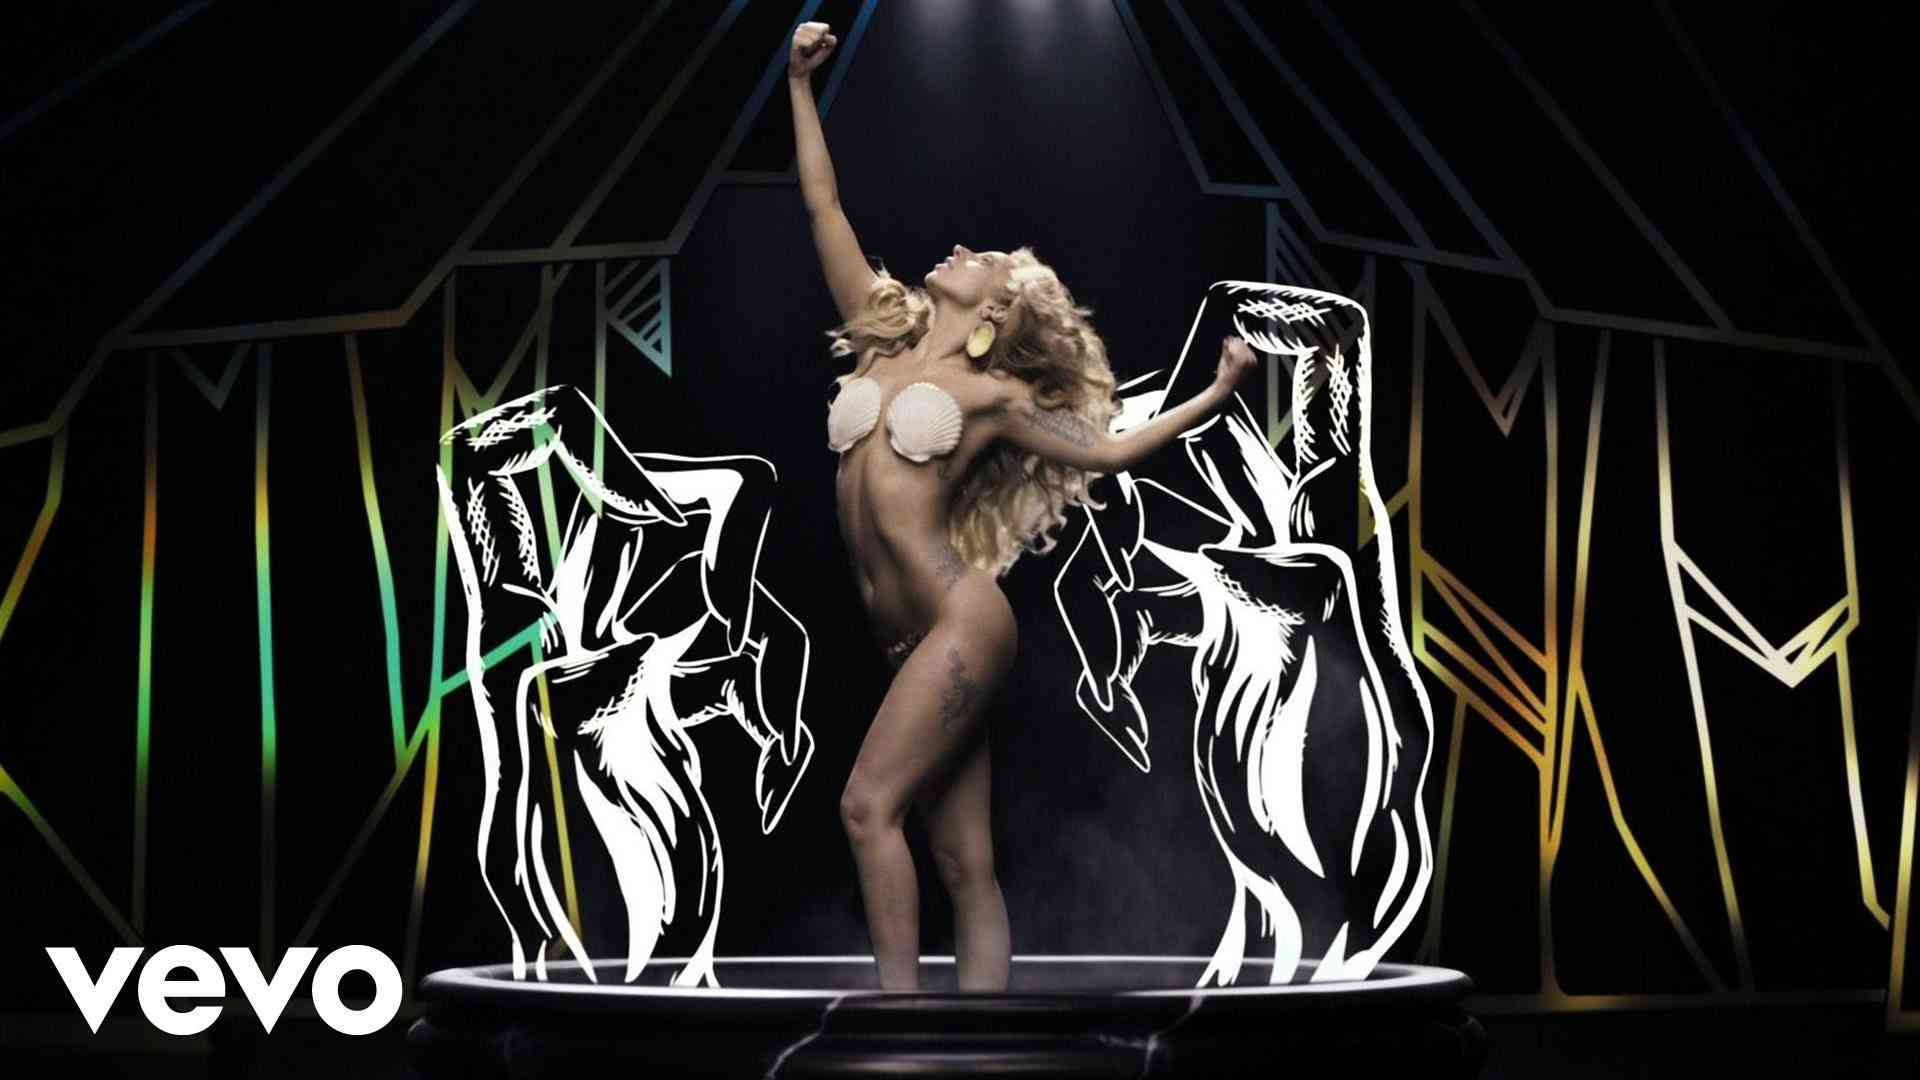 Lady Gaga - Applause (Official) - YouTube